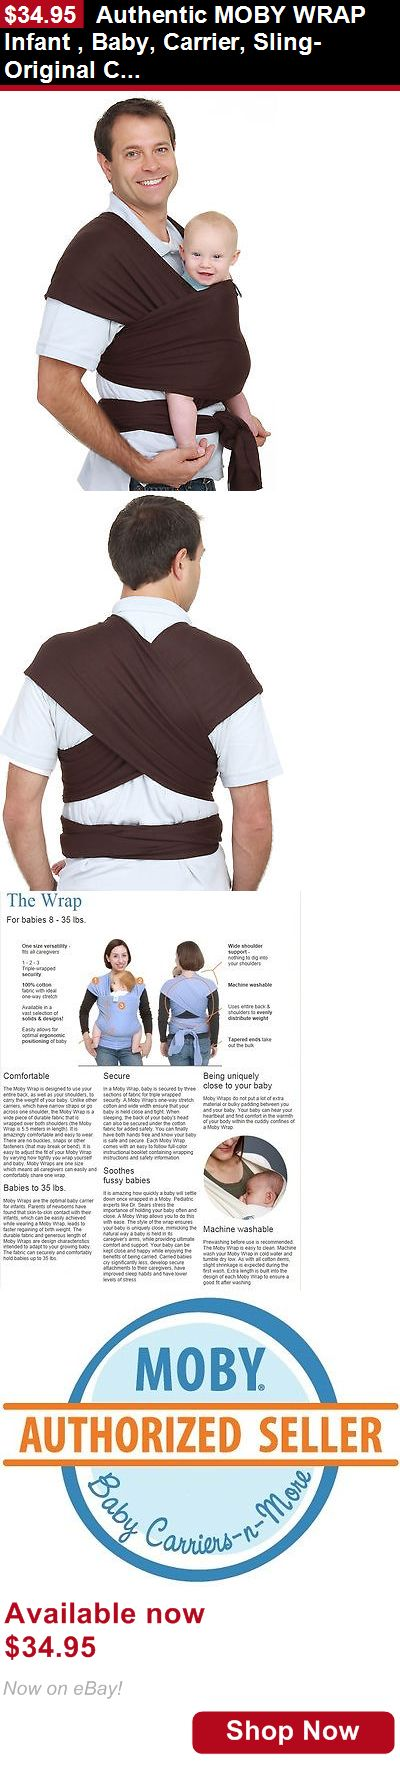 Baby Carriers and Slings and Backpacks: Authentic Moby Wrap Infant , Baby, Carrier, Sling-Original Collection-Chocolate BUY IT NOW ONLY: $34.95